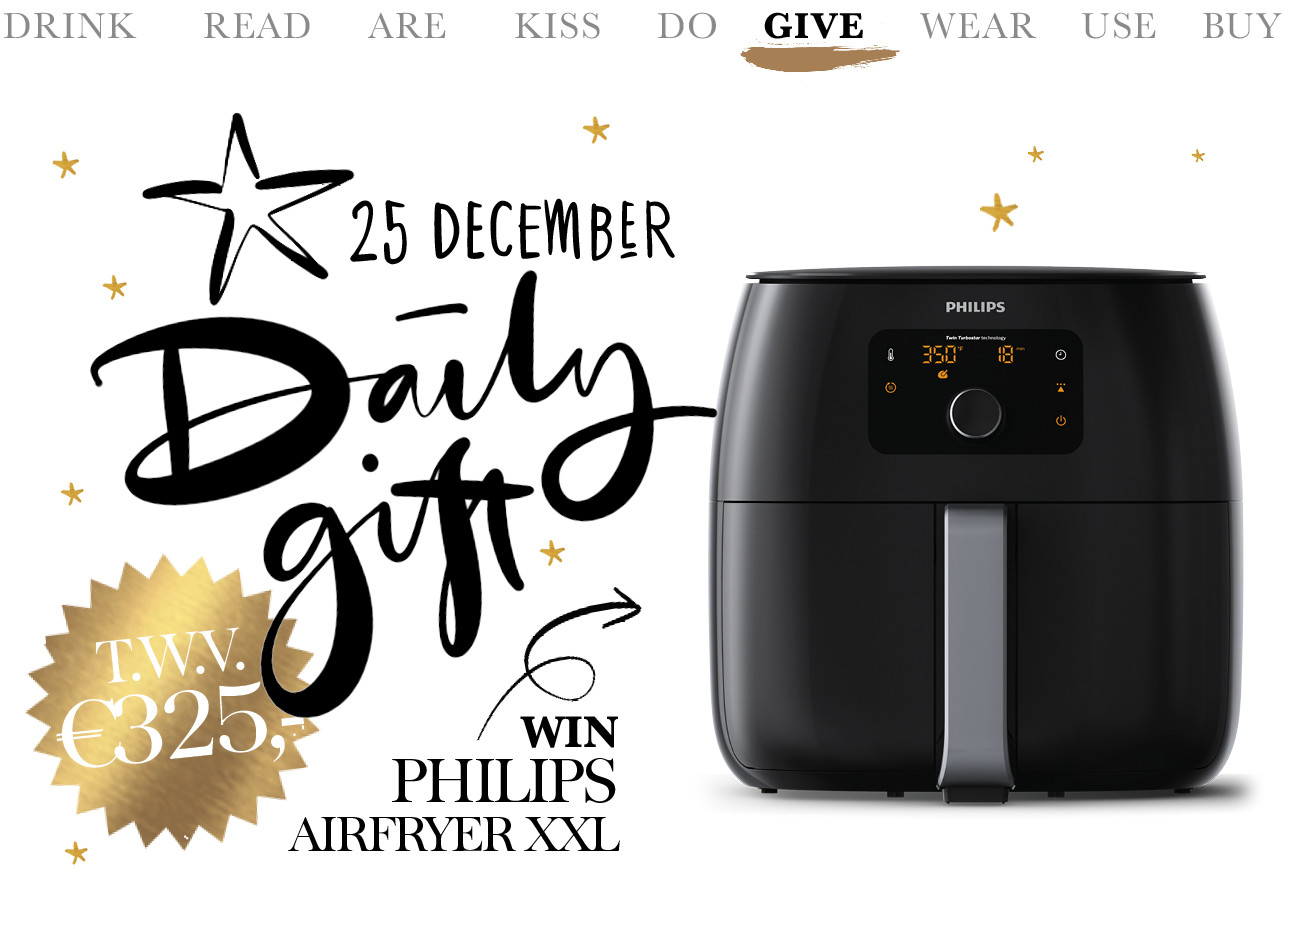 today we give philips air fryer